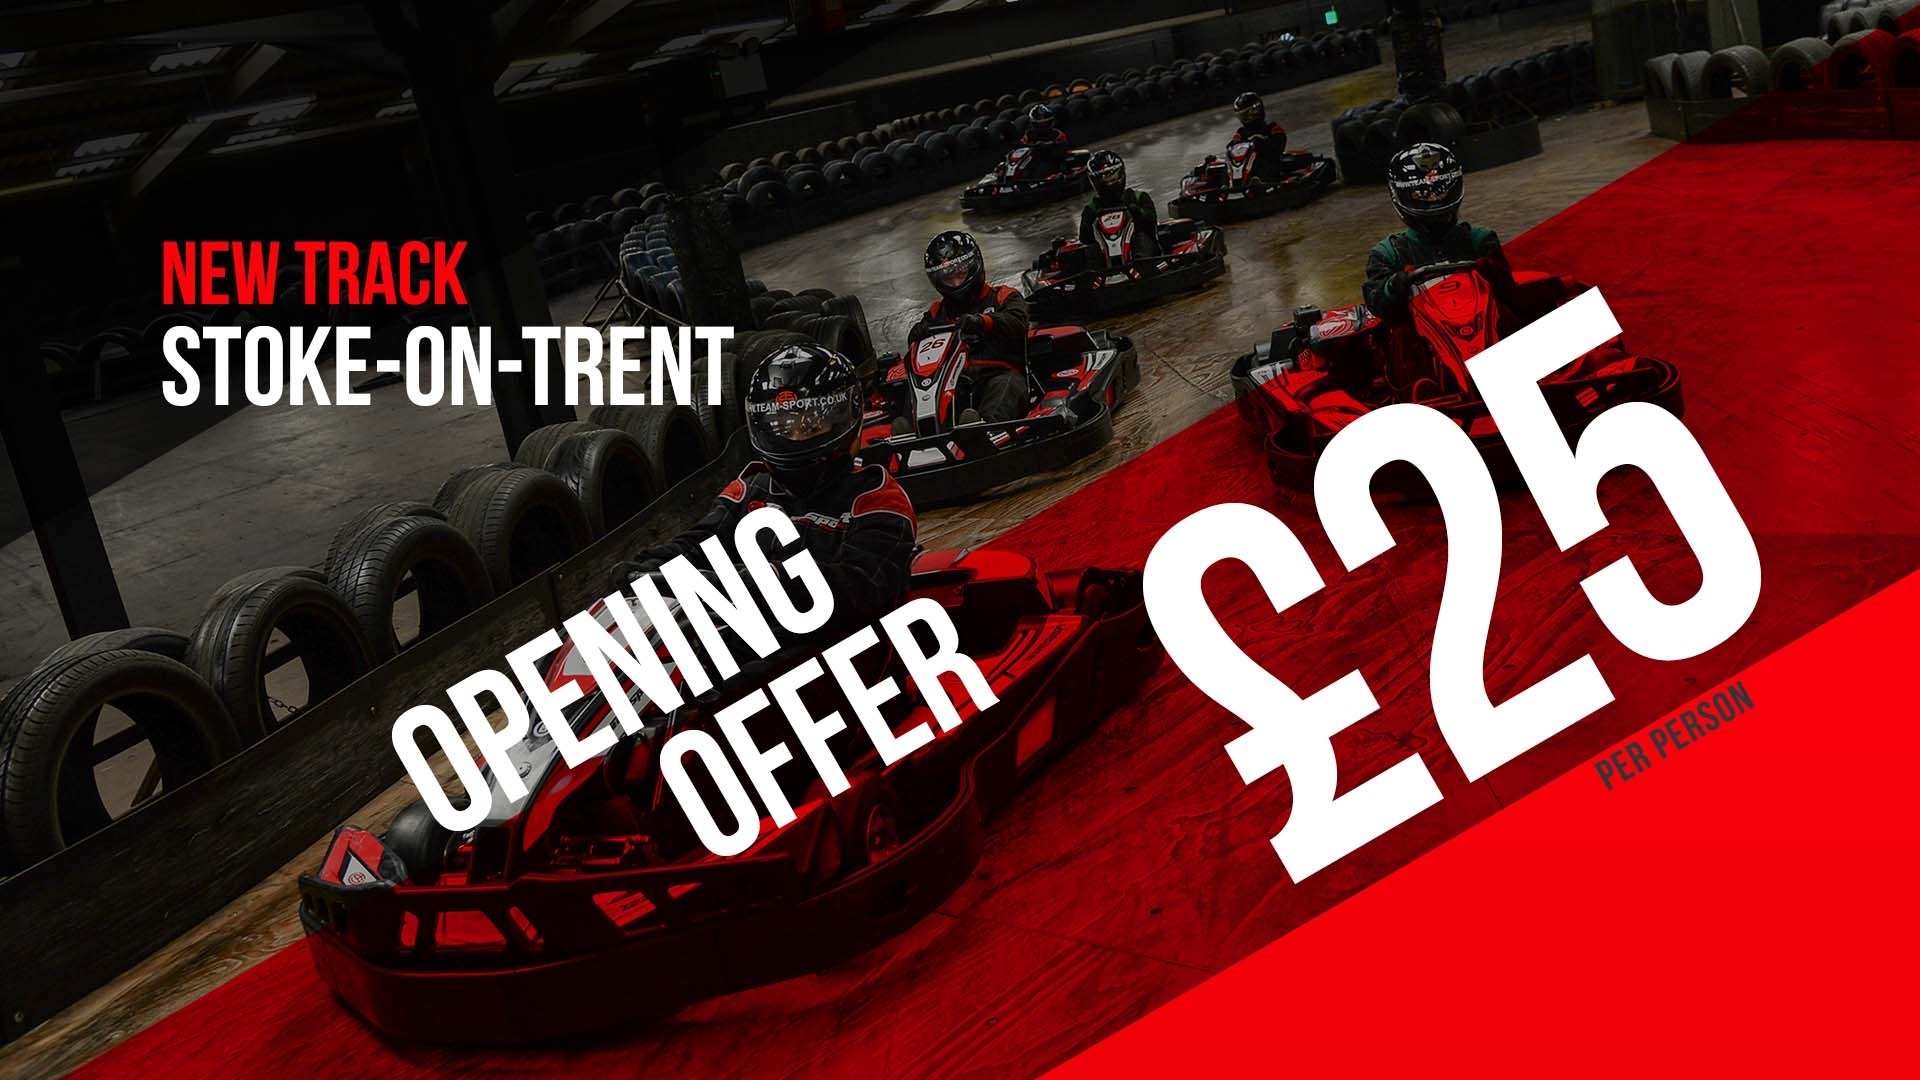 UNBEATABLE GO KARTING OFFERS - Stoke Opening Offer